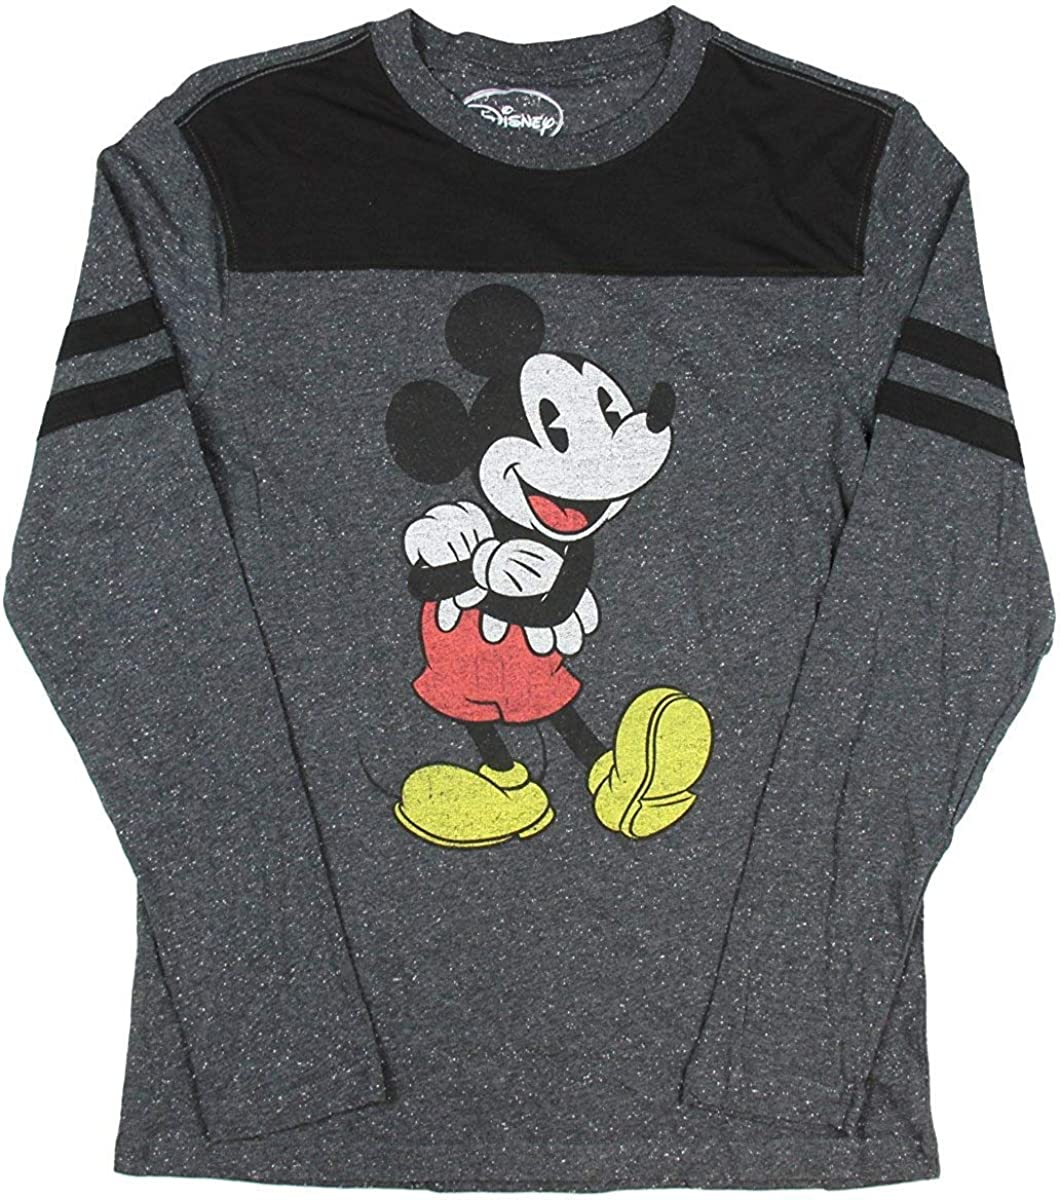 MICKEY MINNIE MOUSE Disney Long Sleeve Shirt Top Vintage Loose PLUS SIZE Tee Top